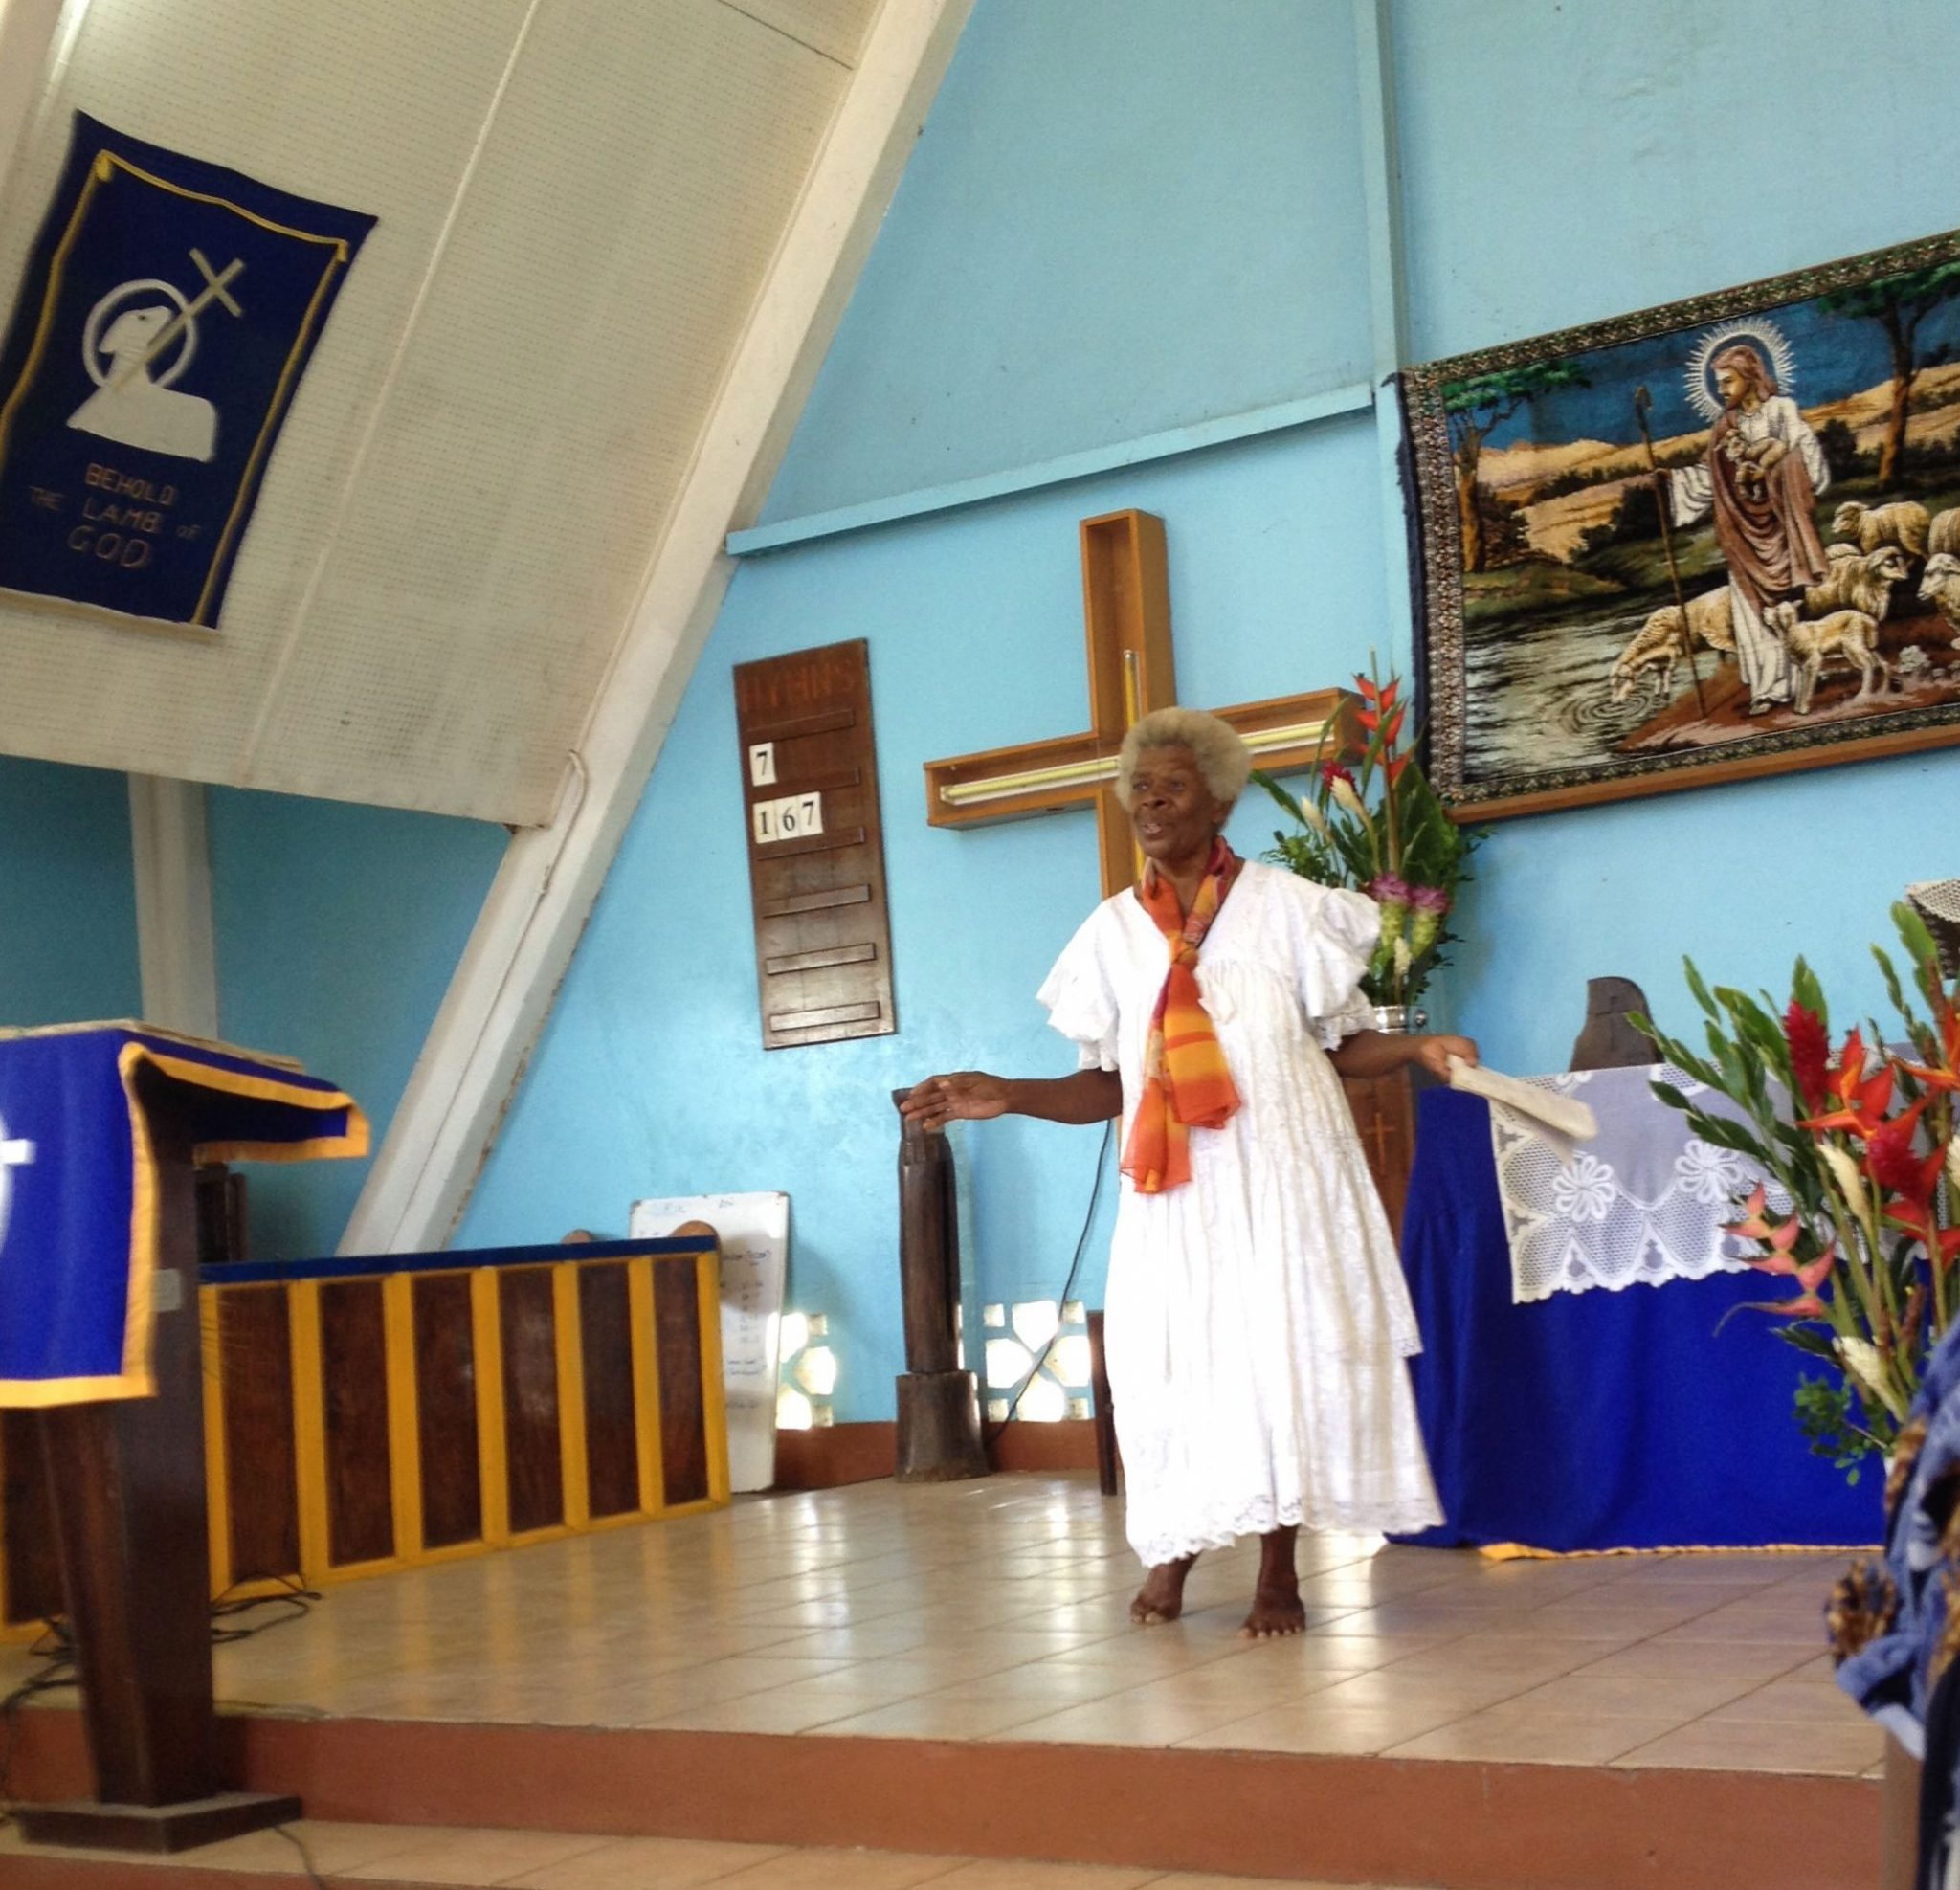 96-we-believe-this-woman-and-another-were-possibly-competing-with-their-extraordinary-a-cappella-renditions-of-gospe-hymns-the-church-service-was-in-the-bislama-language